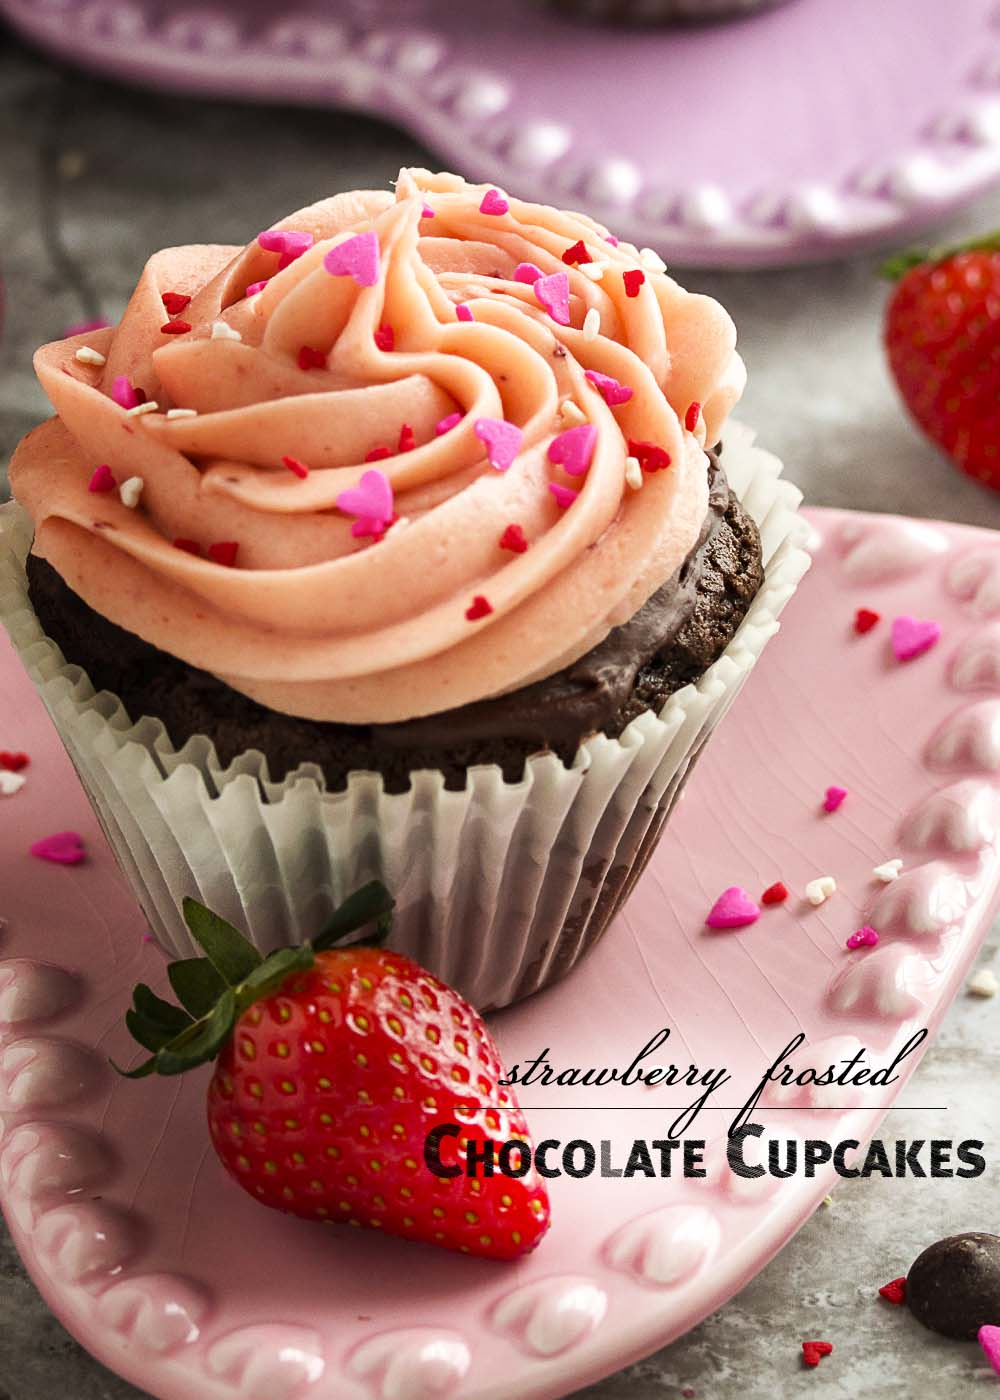 Rich, dark double chocolate cupcakes are filled with chocolate ganache and frosted with a strawberry buttercream frosting in this very chocolaty way to say I Love You this Valentine's Day. | justalittlebitofbacon.com